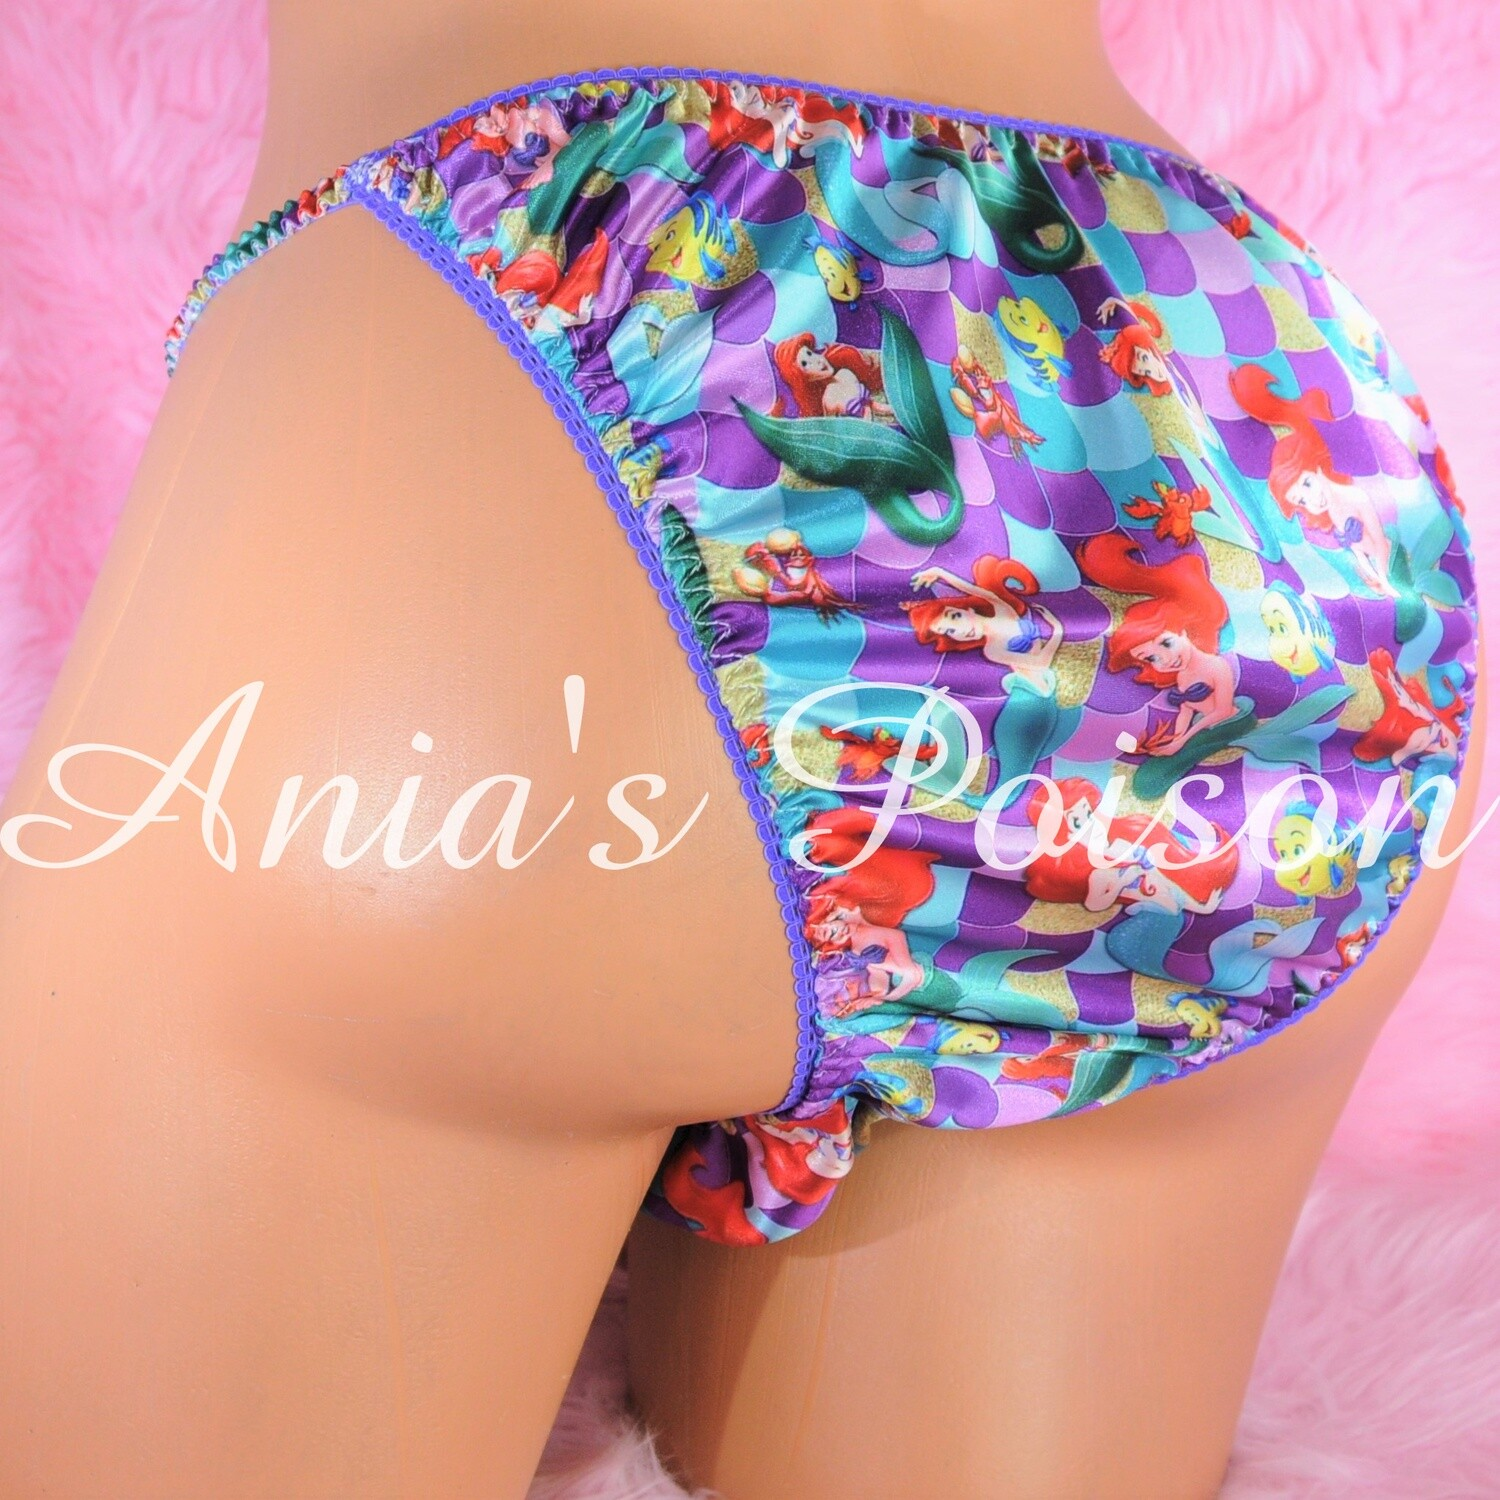 Ania's Poison satin String bikini Mermaid Princess Half Back Cheeky Cut MENS satin shiny panties